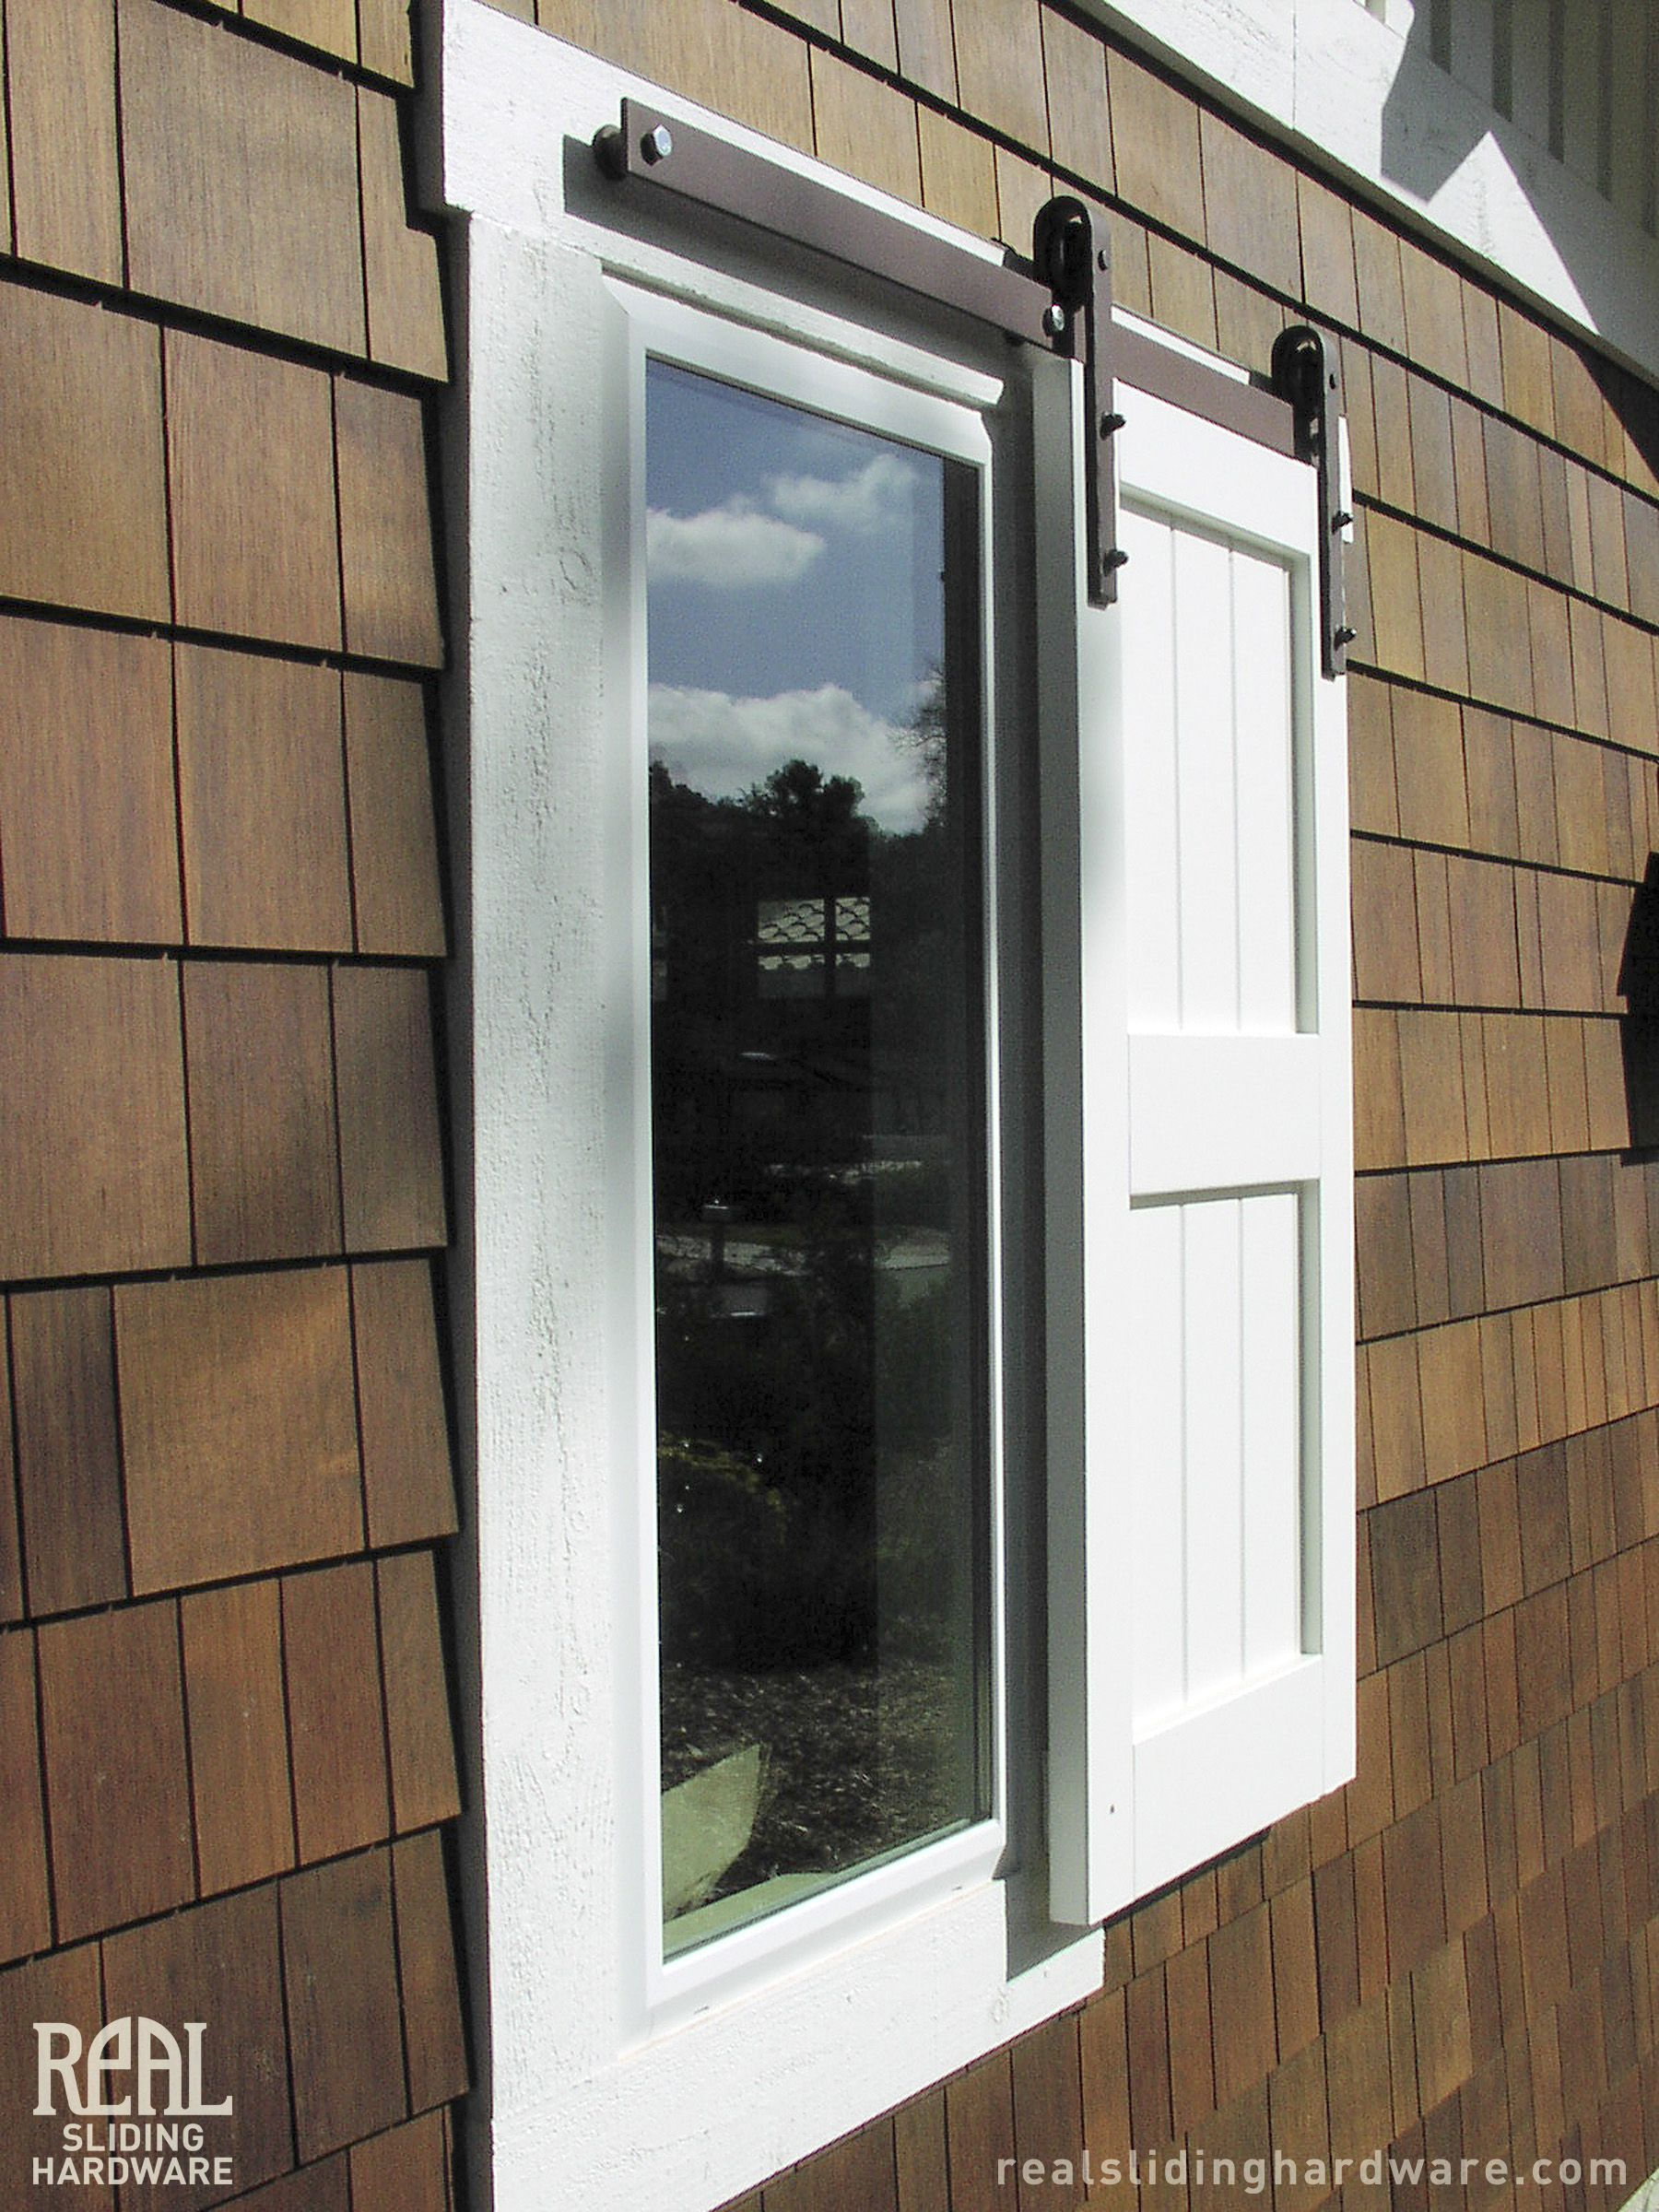 Sliding Hardware Is Used To Create An Exterior Shutter In 2020 Shutters Exterior Exterior Barn Doors House Shutters